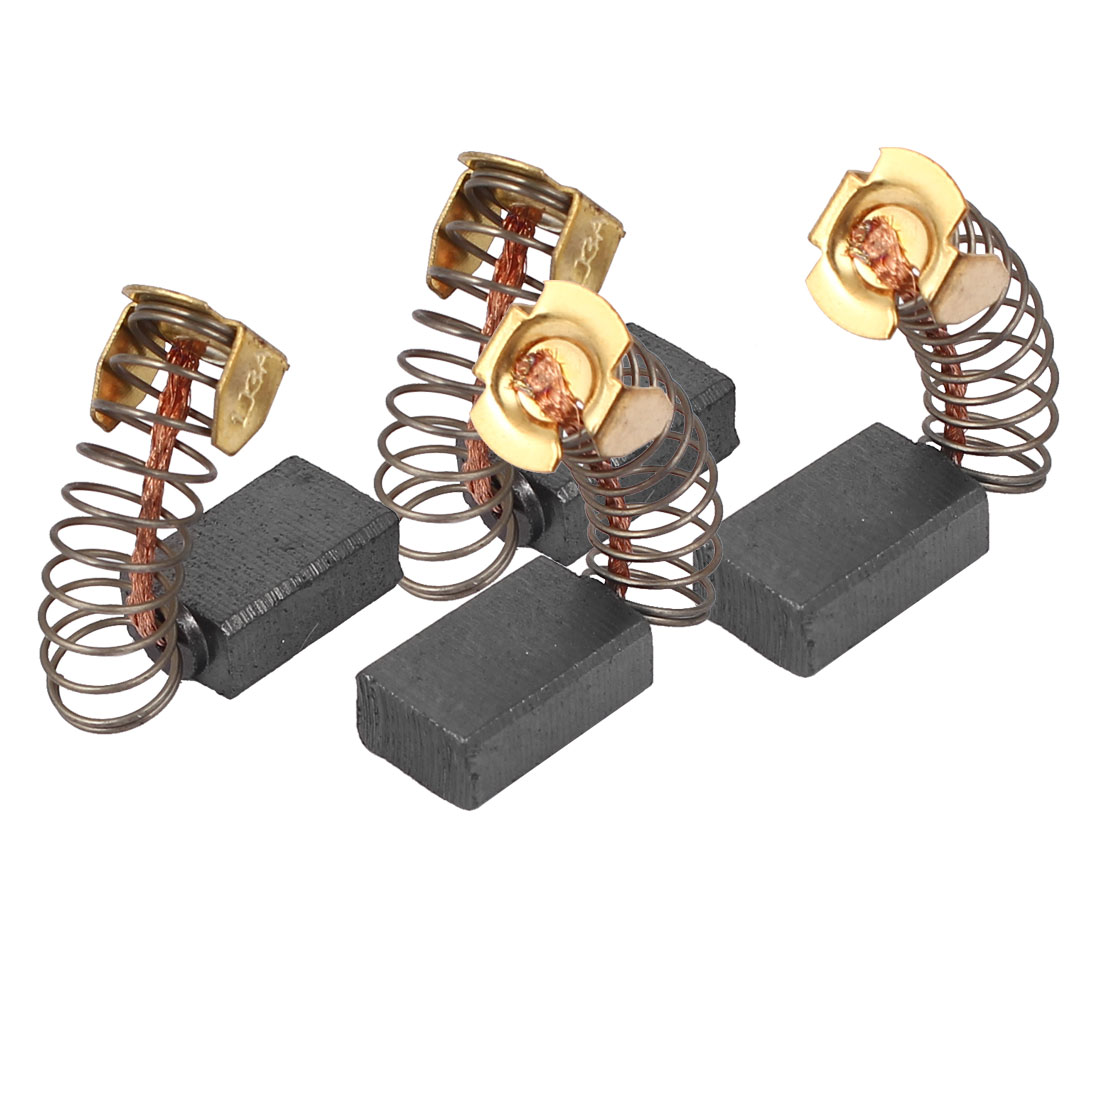 4pcs Replacement Motor Carbon Brushes 15mmx10mmx6mm f Electric Motors